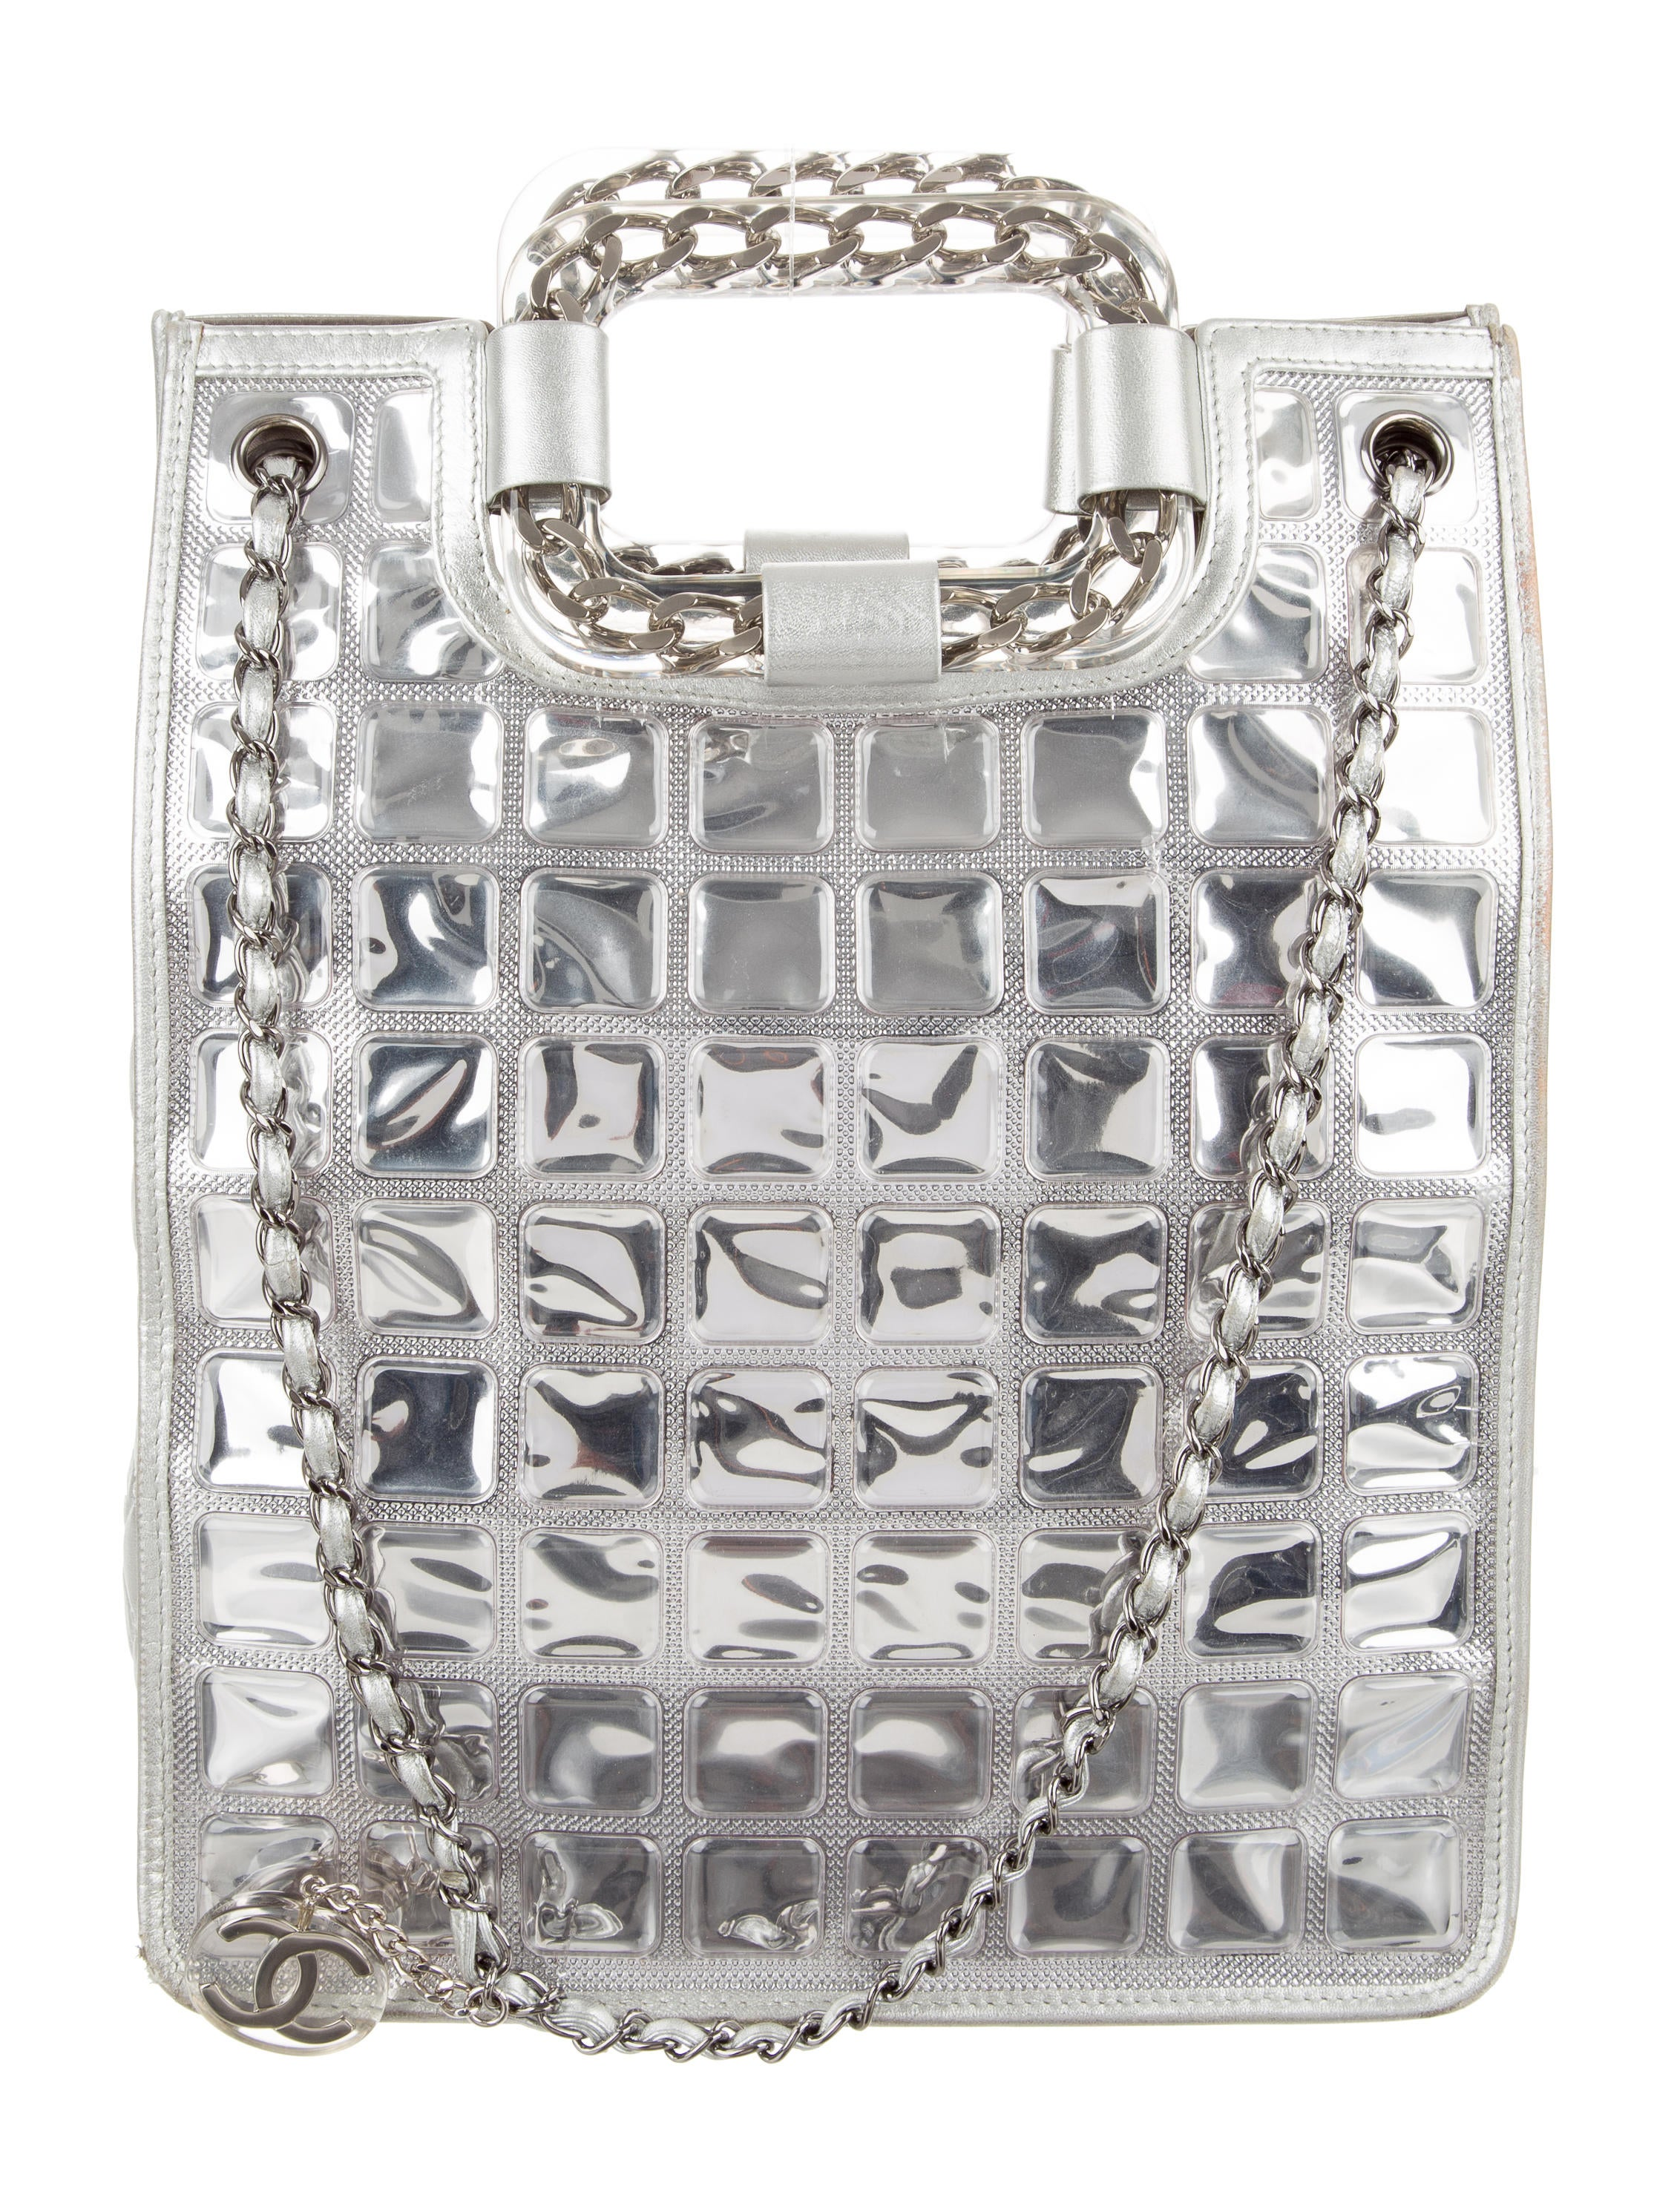 ed72c8670737 Chanel Ice Cube Shopper Tote - Handbags - CHA176907 | The RealReal